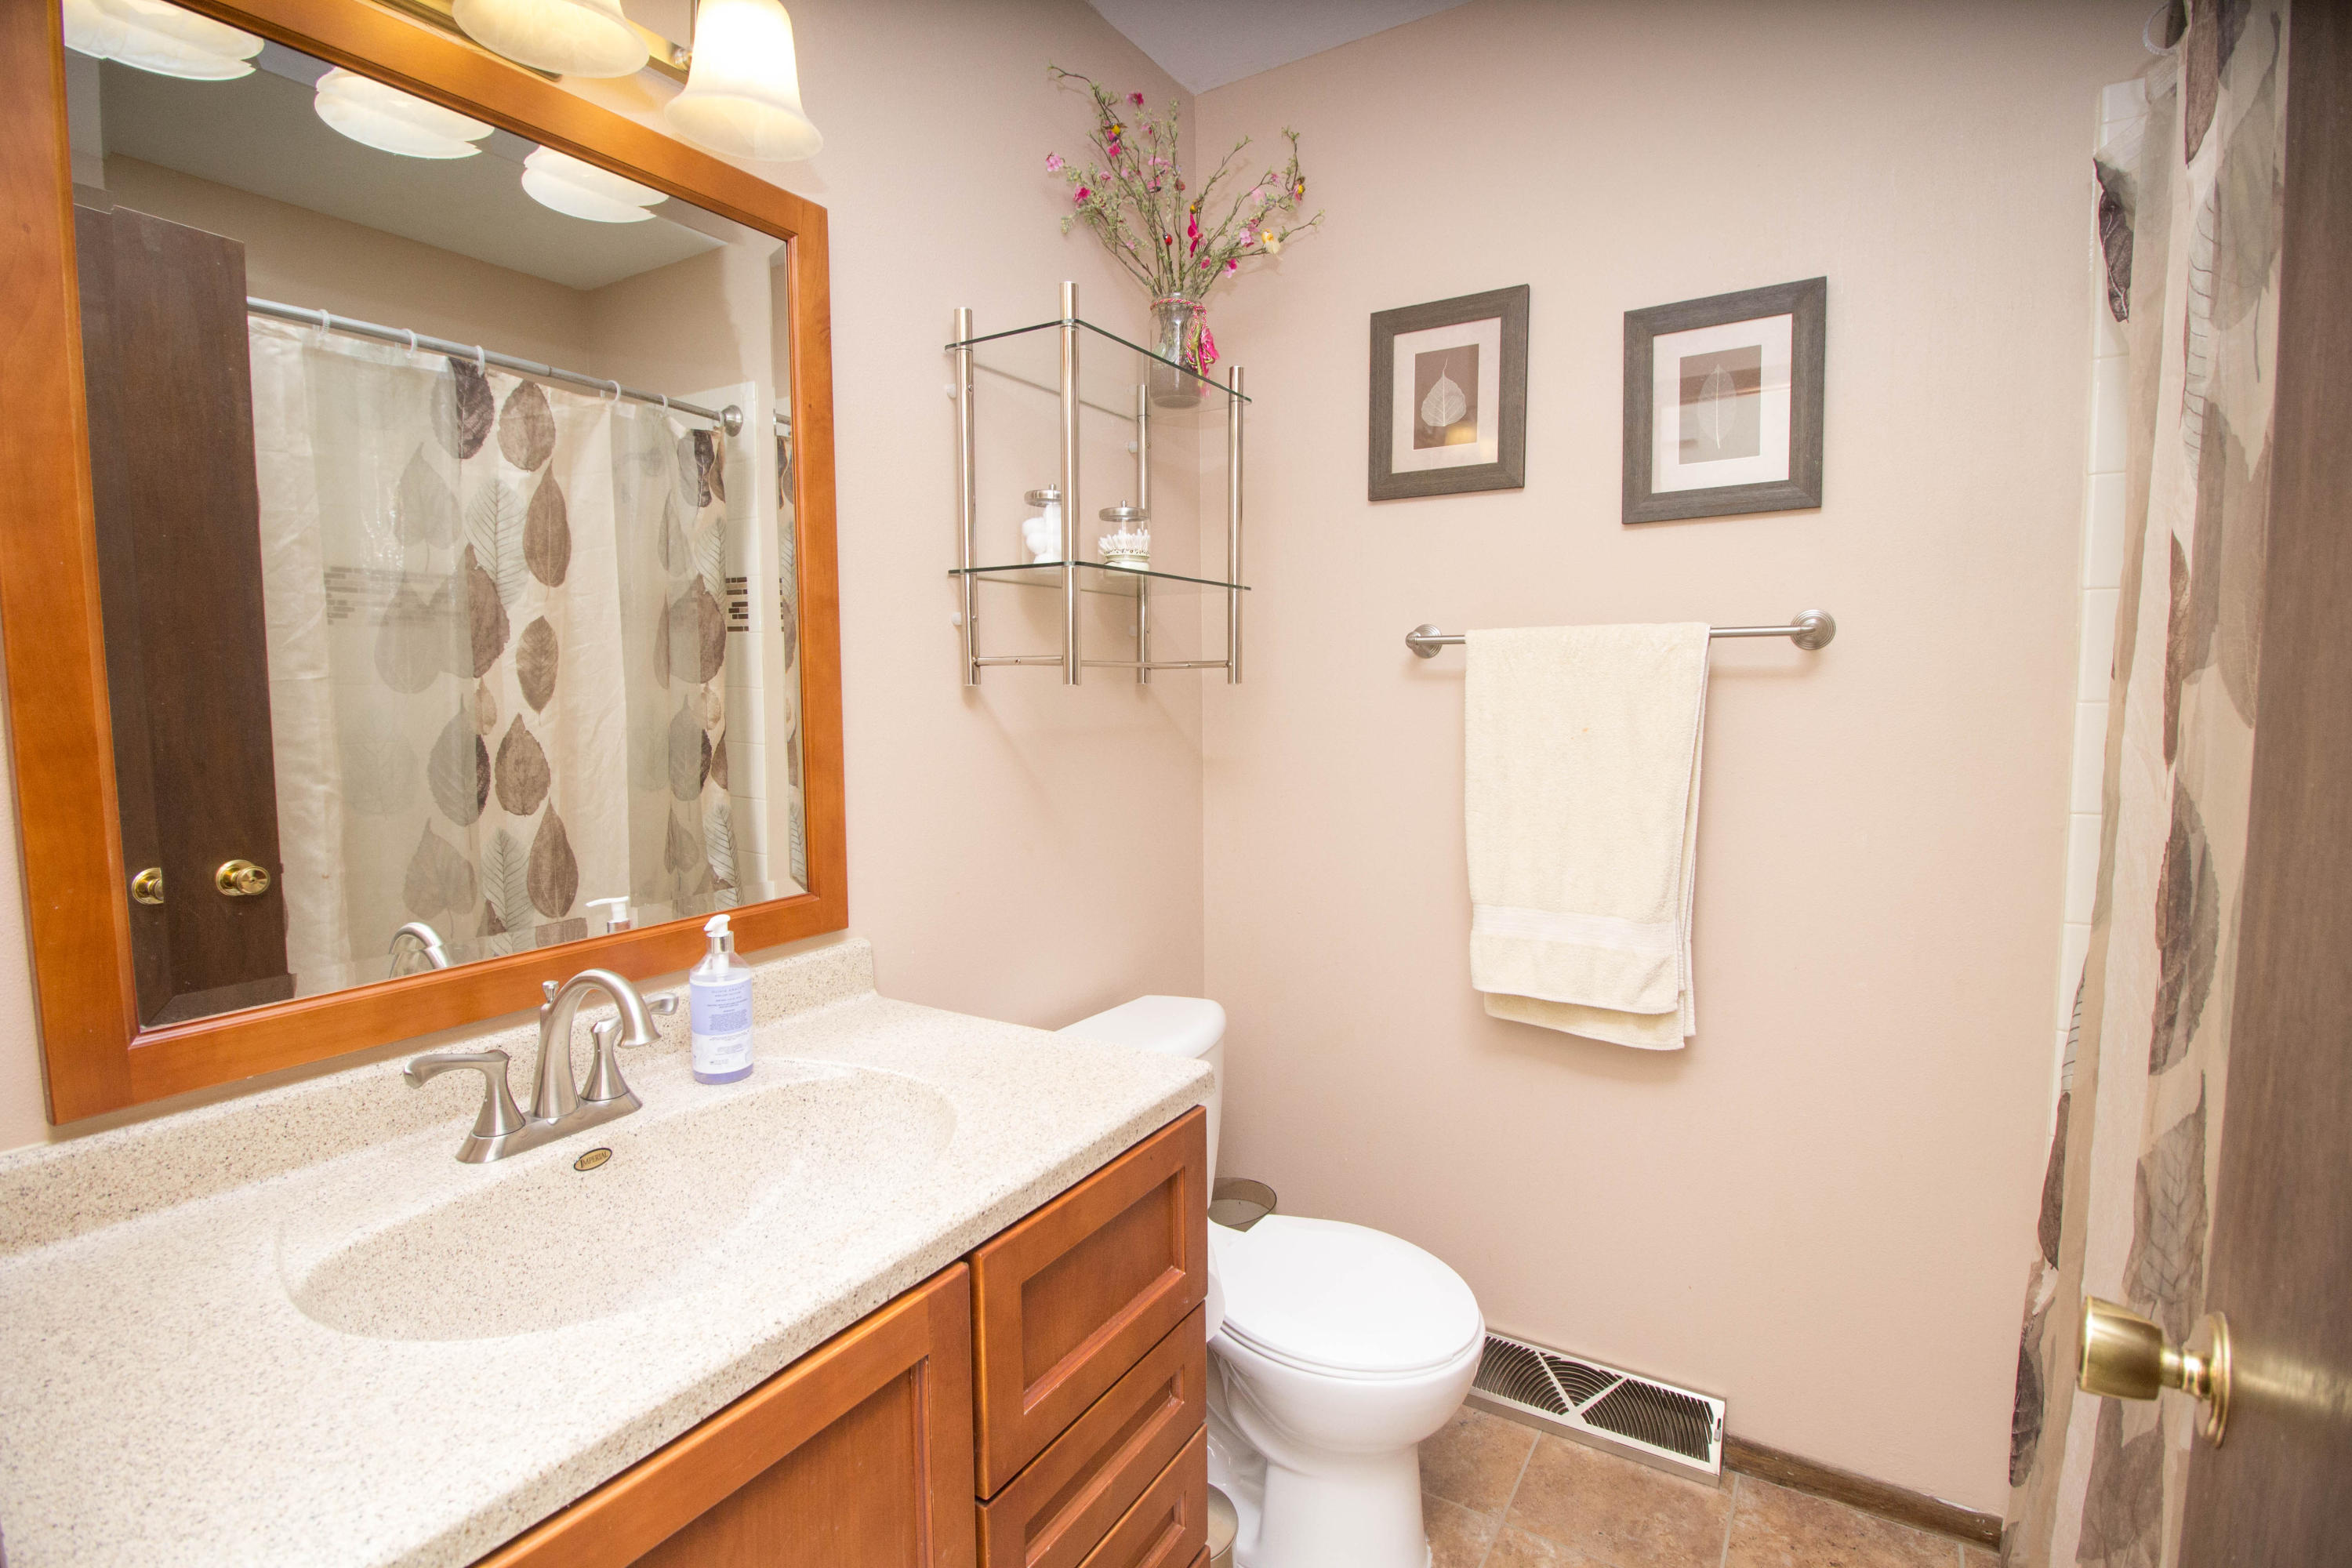 2104 Garland Ave, Waukesha, Wisconsin 53188, 3 Bedrooms Bedrooms, ,1 BathroomBathrooms,Single-Family,For Sale,Garland Ave,1666457